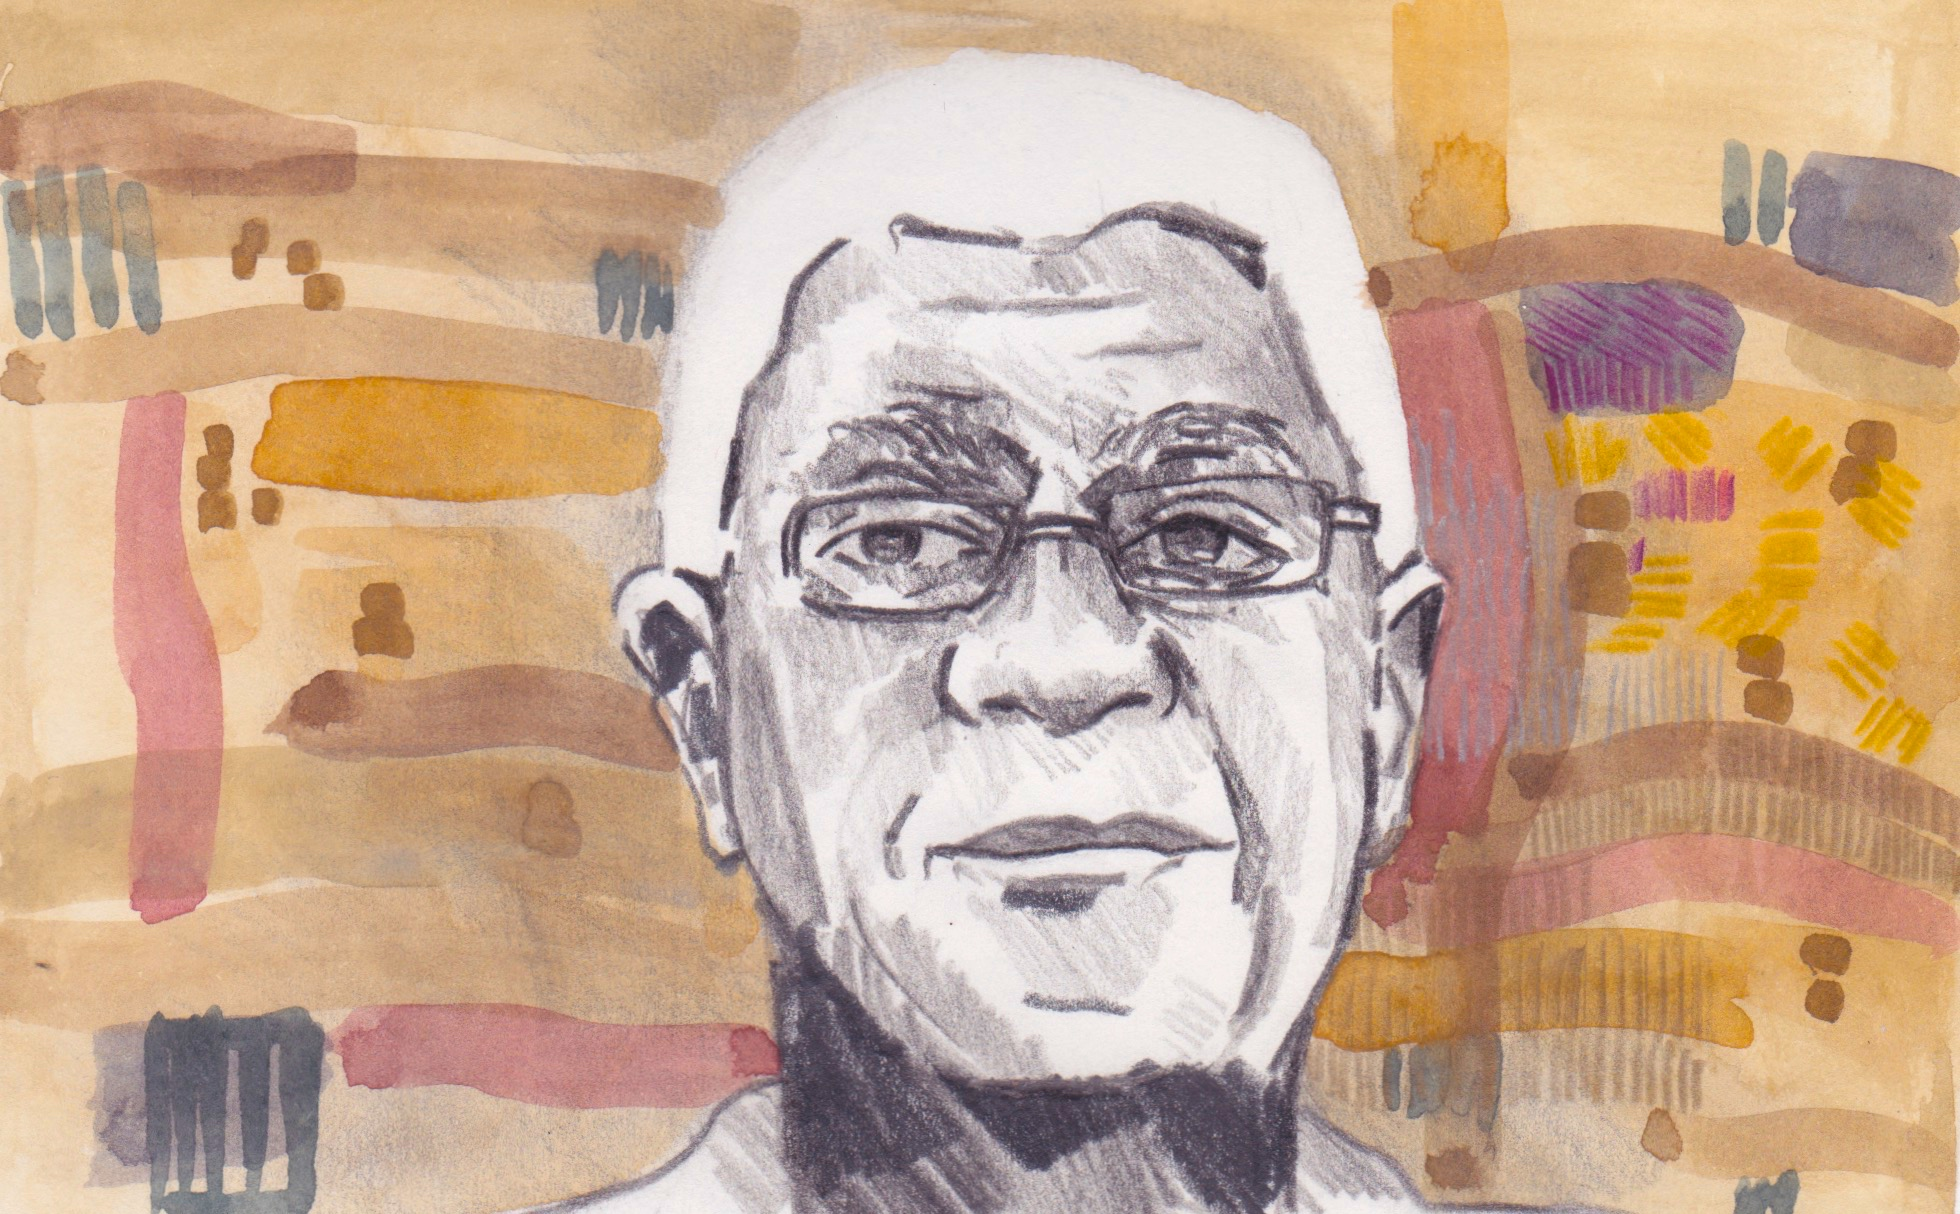 31/05/15 Ghanaian sculptor and teacher El Anatsui has won the Golden Lion for Lifetime Achievement award at the Venice Biennale held this month. He specialised in making installations out of bottle caps and other found materials.